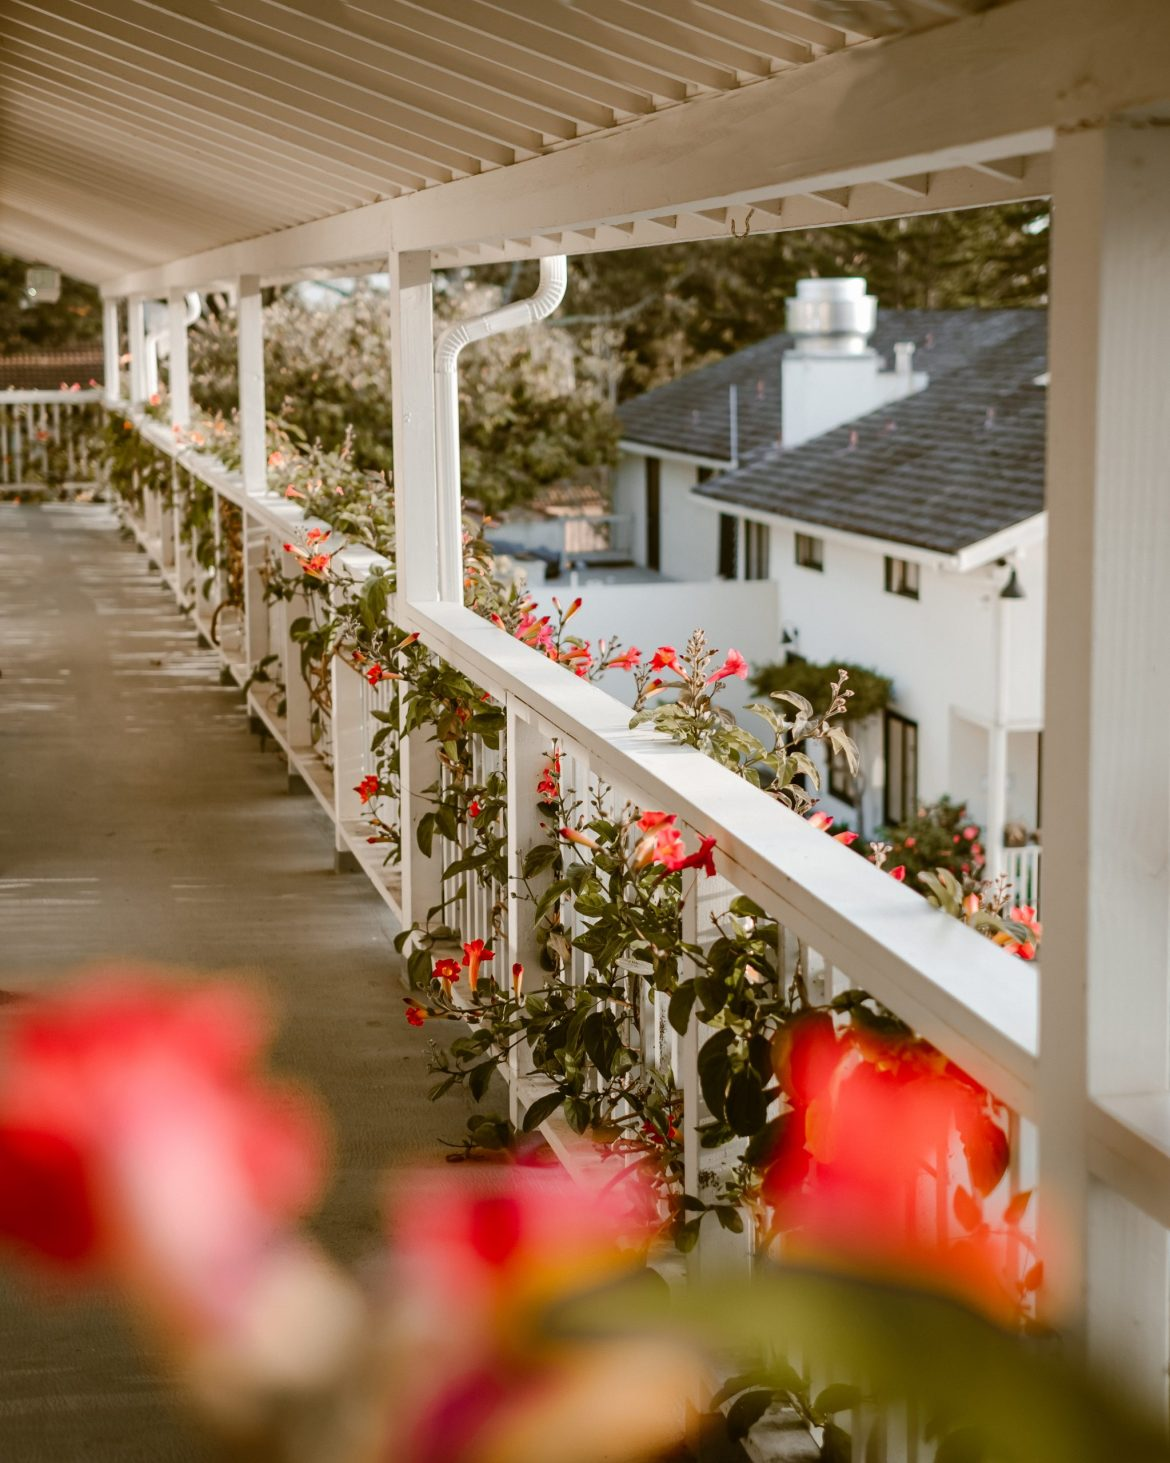 8 Highlights from the dreamiest stay at The Hotel Carmel